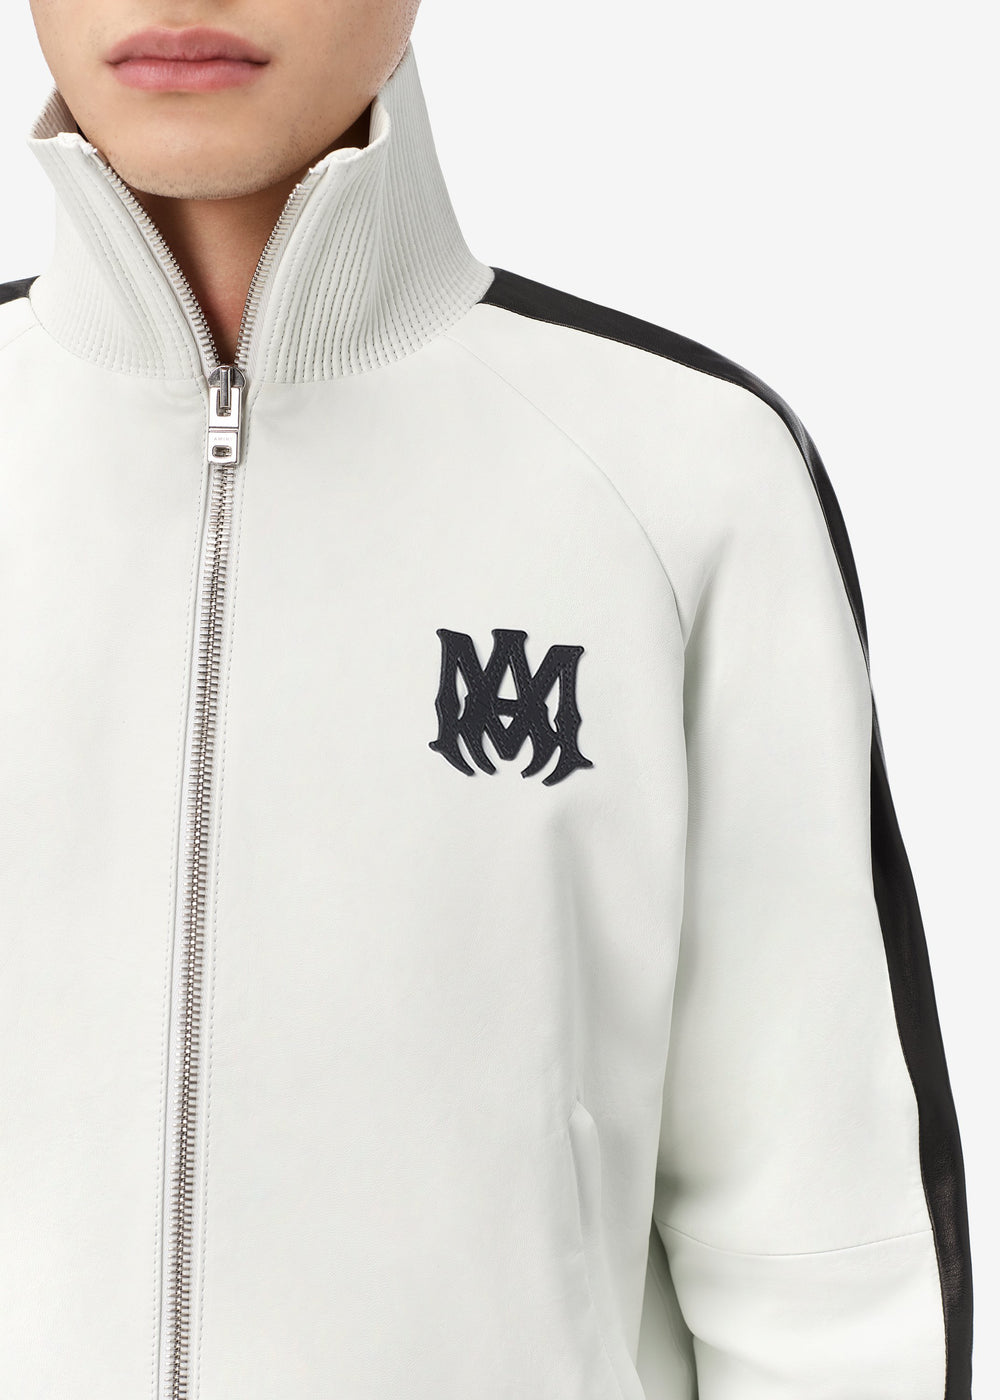 M.A. LEATHER ZIP TRACK JACKET - OPTICAL WHITE